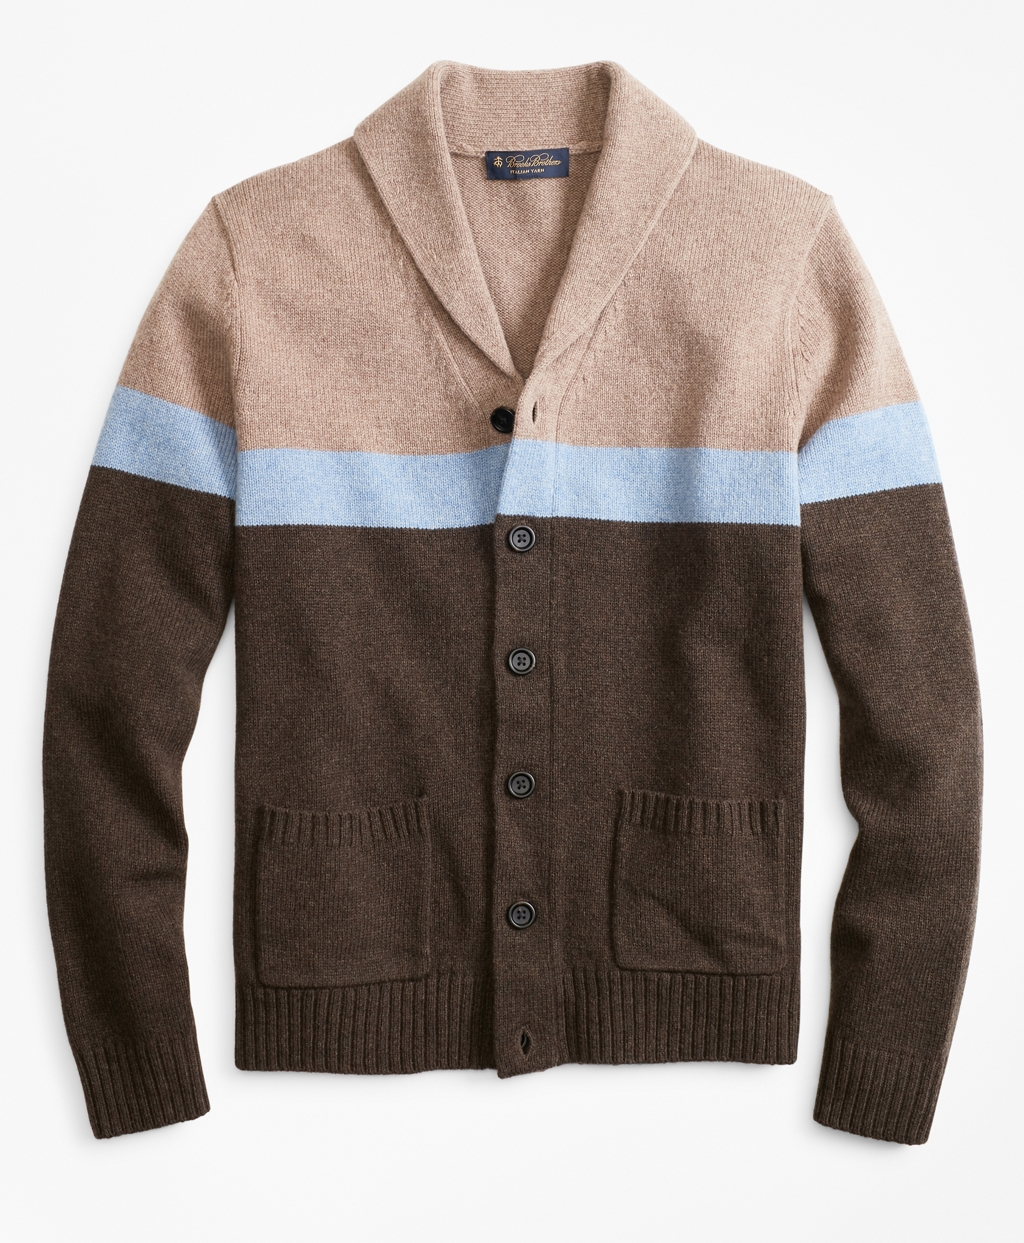 60s 70s Men's Jackets & Sweaters Brooks Brothers Mens Merino Wool Color-Block Shawl Collar Cardigan $198.00 AT vintagedancer.com